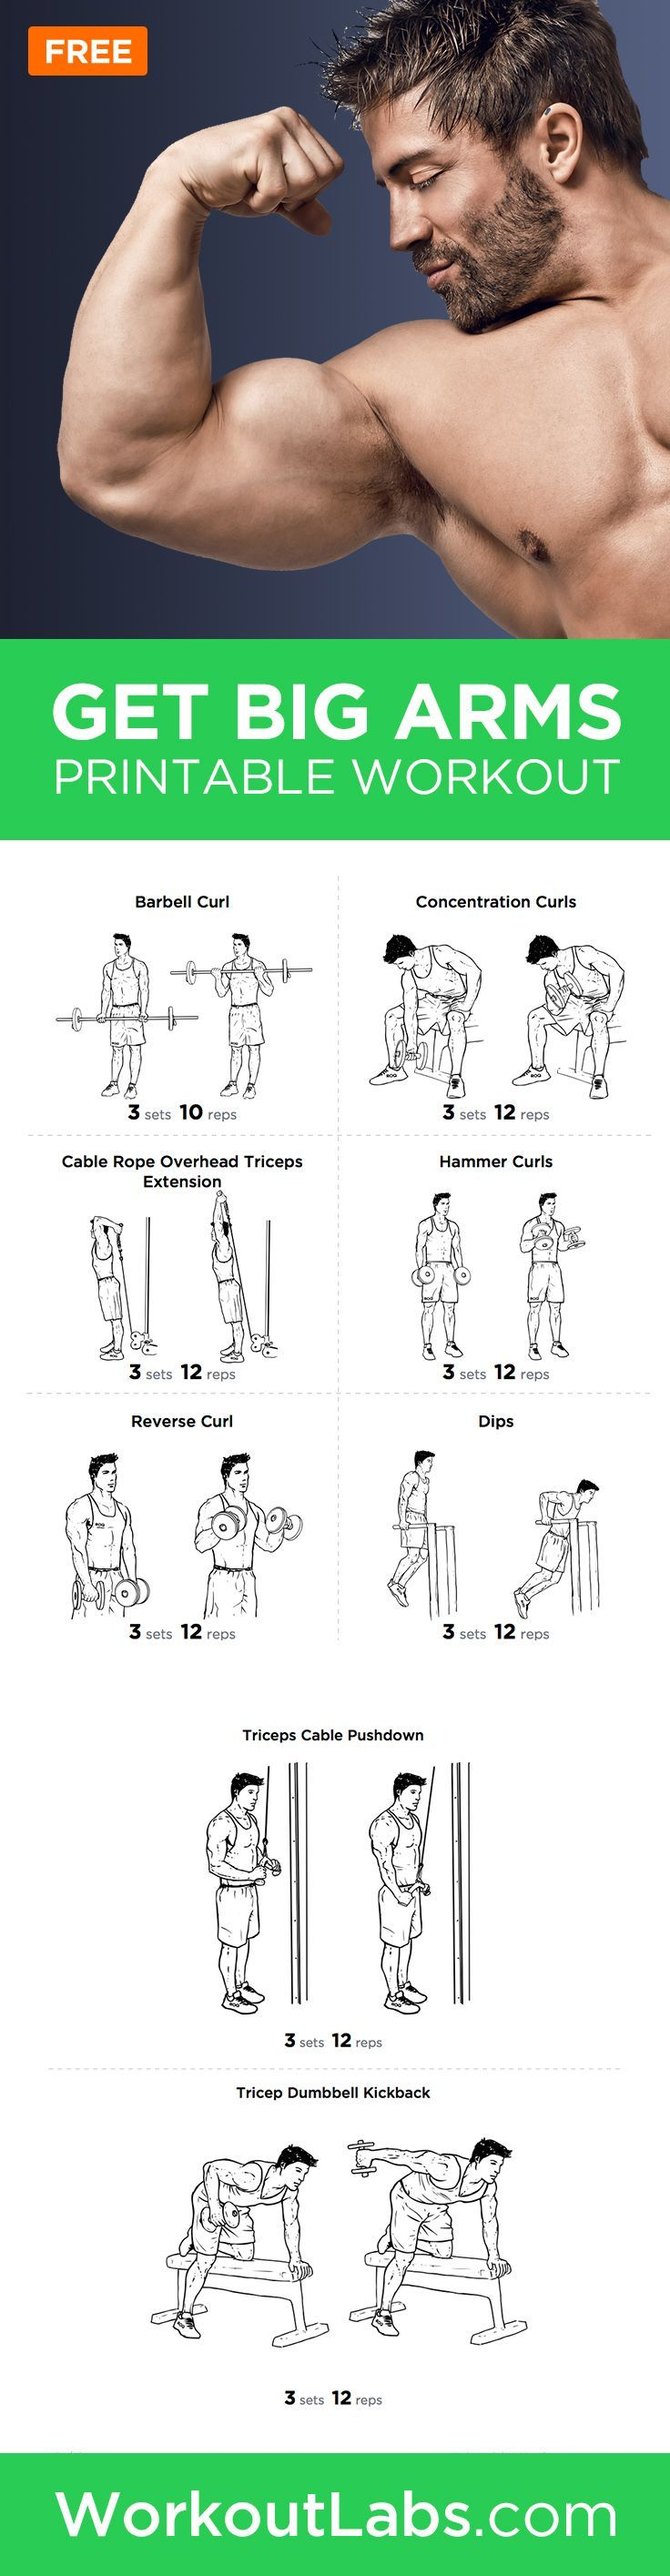 Big Arms Workout: Biceps and Triceps Exercises Printable Routine – Summer is just around the corner, so it's time to show off arms that are ripped and toned with this high intensity workout.: